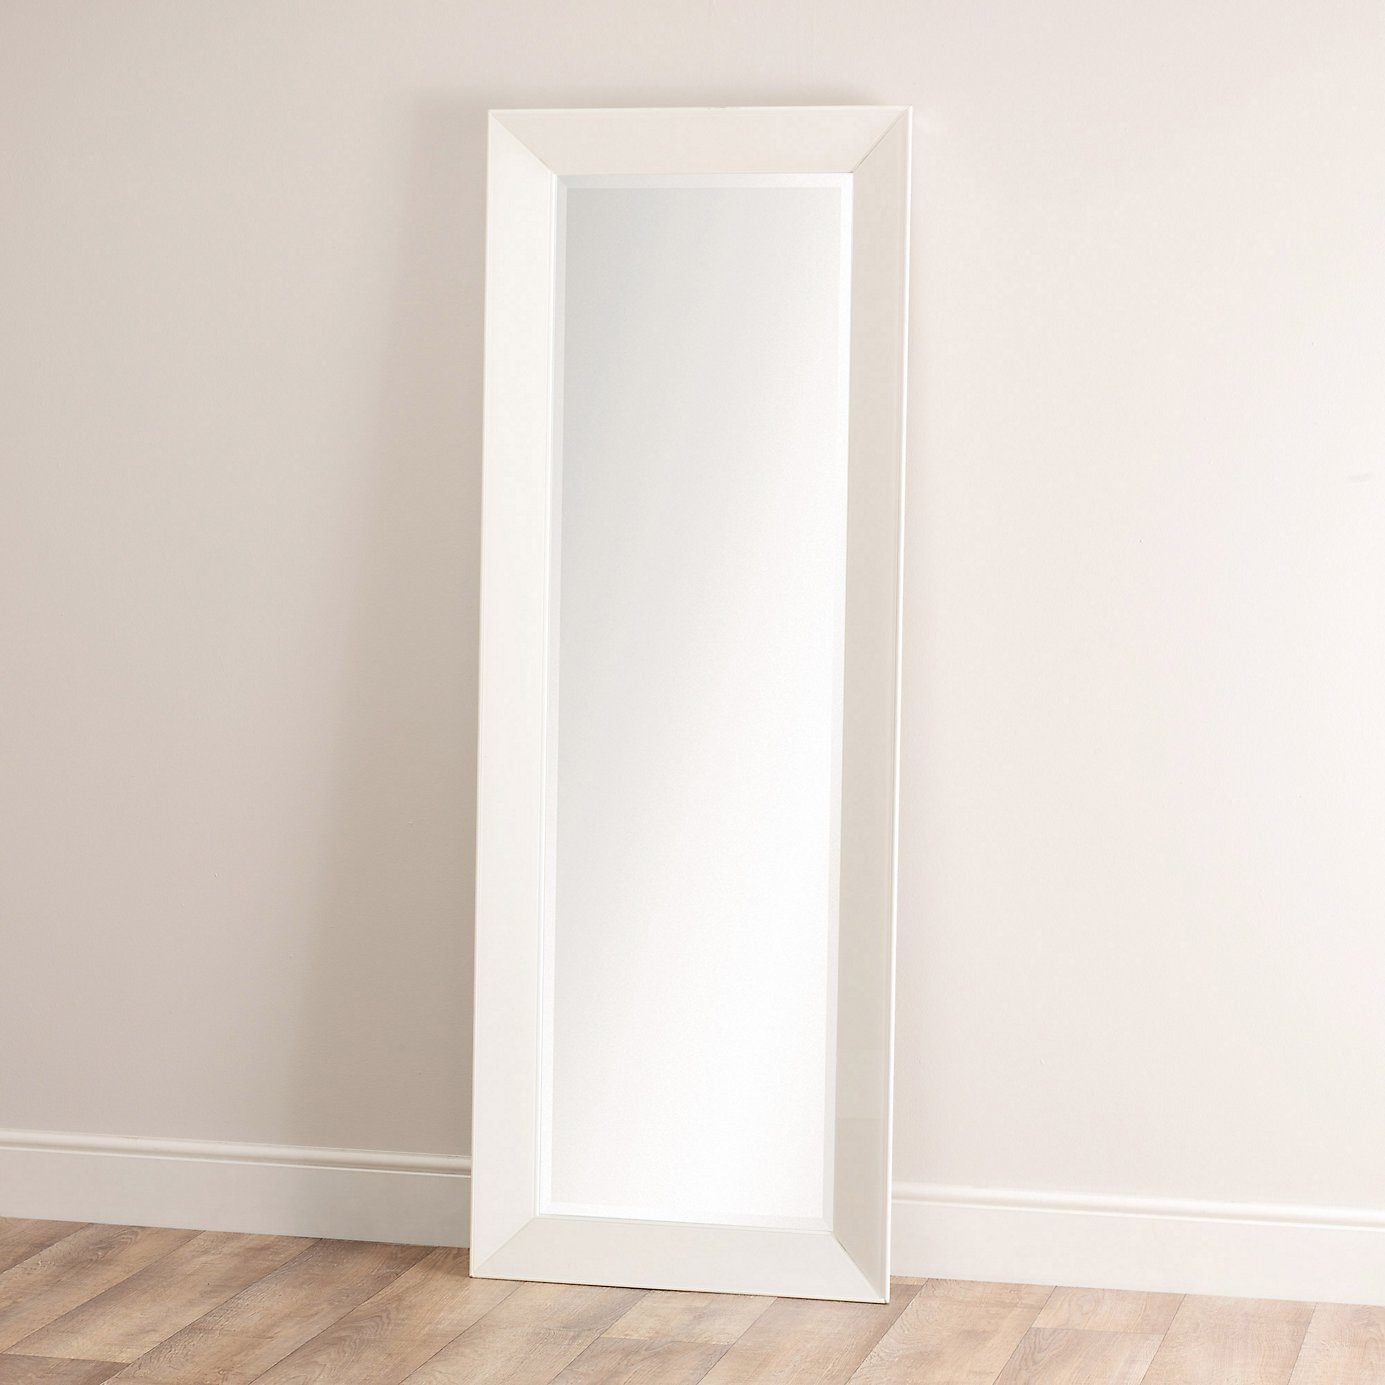 Framed full length mirror home ideas for Floor mirror white frame